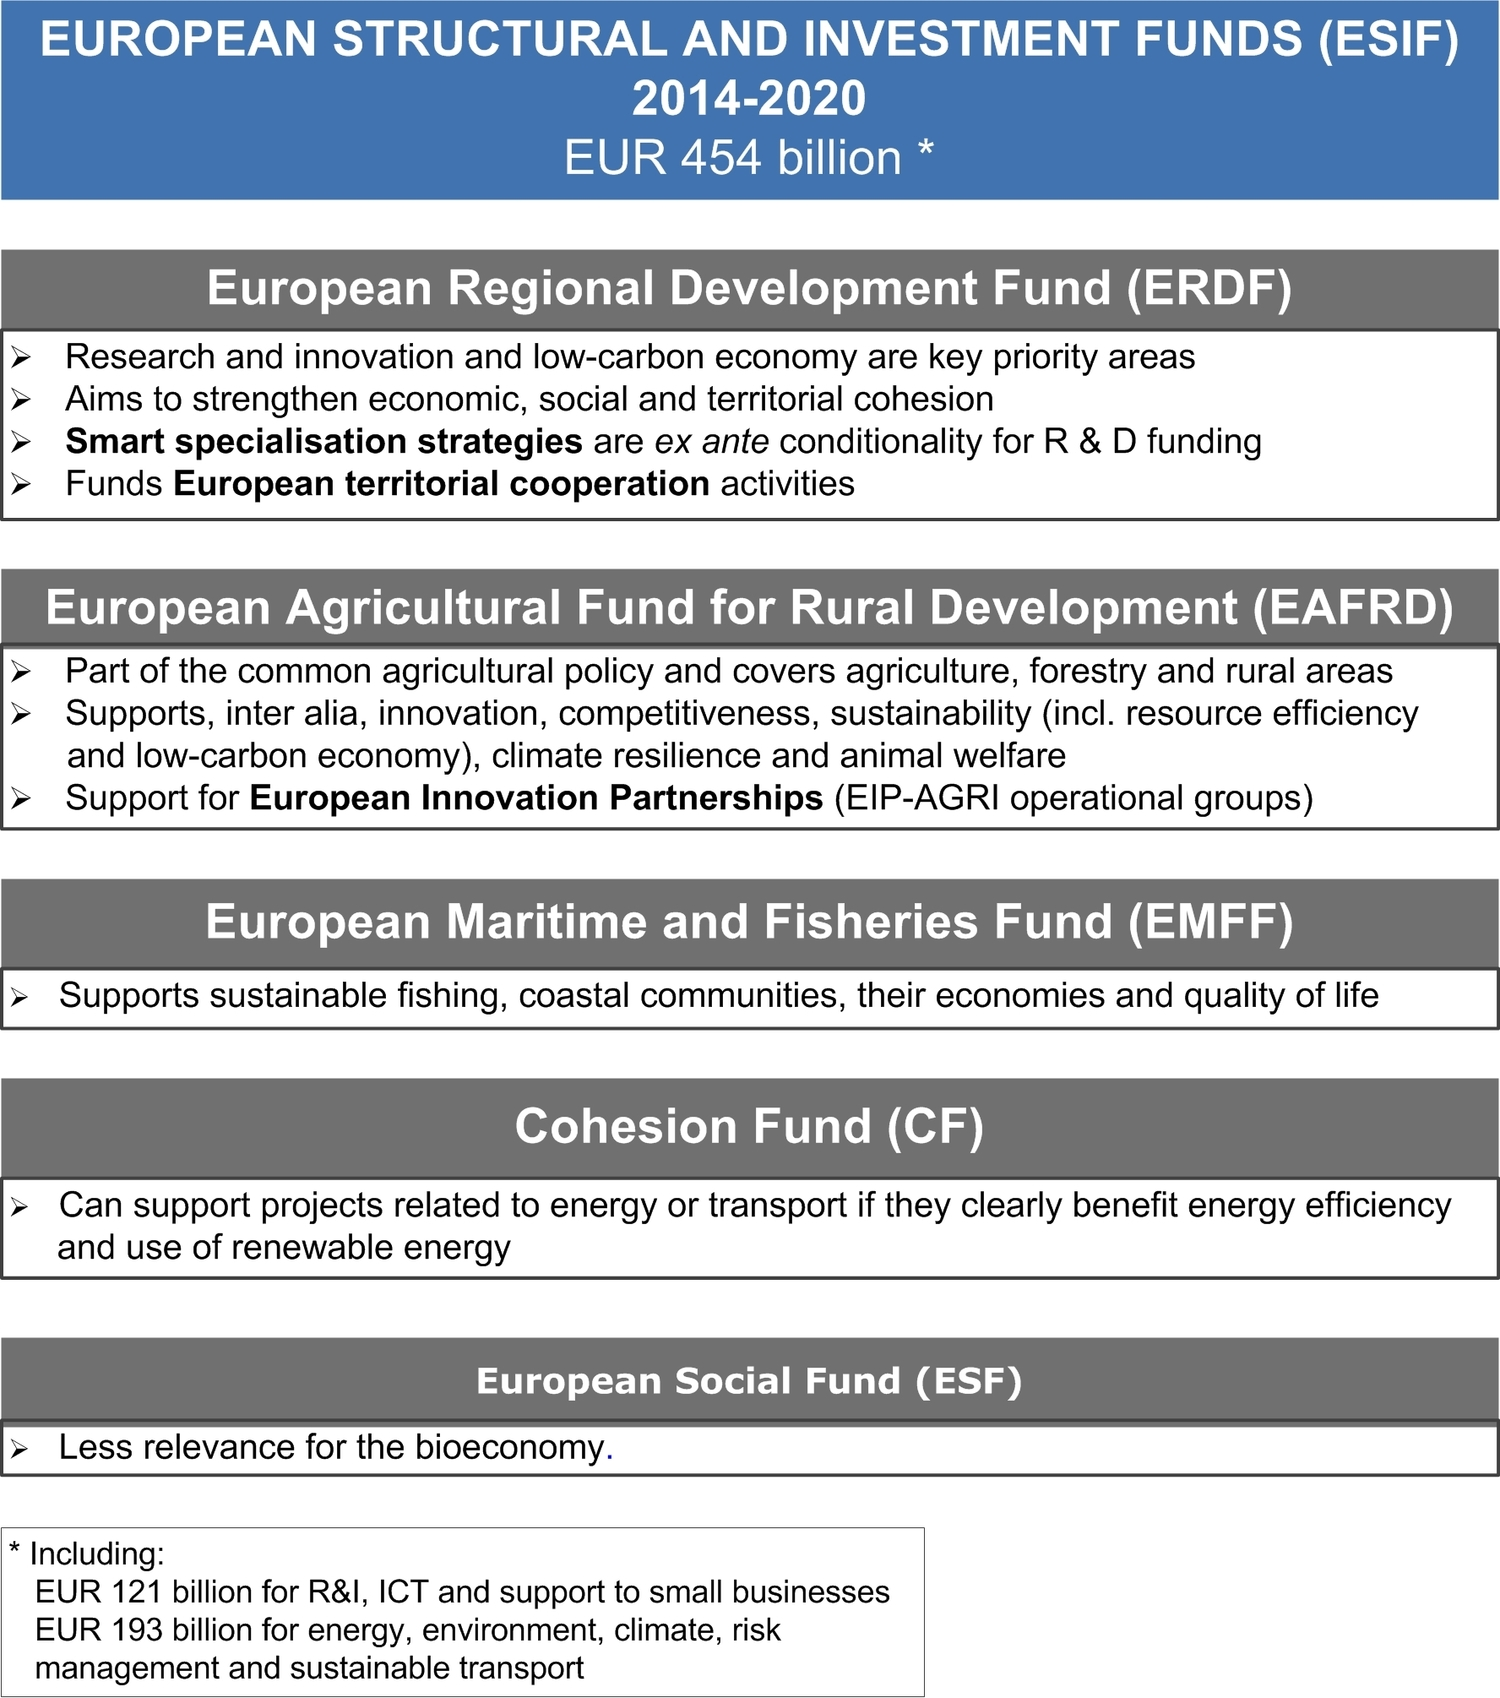 European Structural and Investment Funds (ESIF) 2014-2020